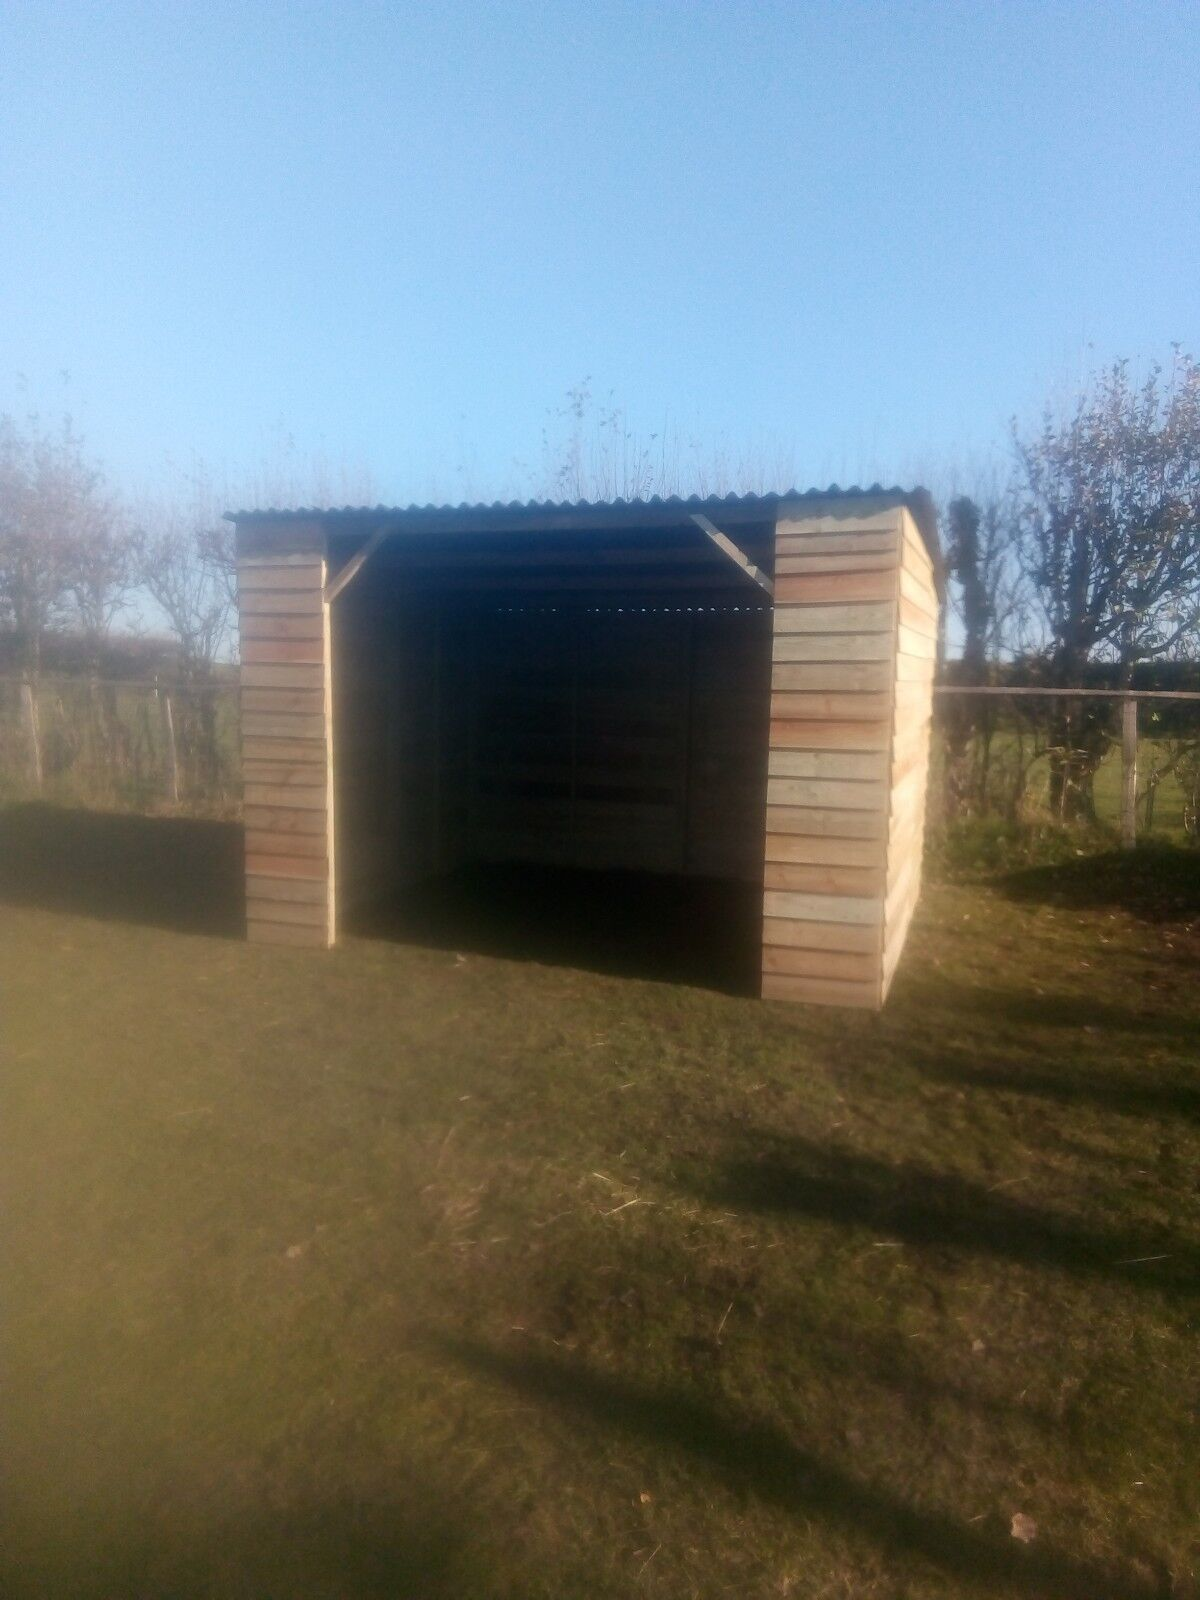 Pony field shelter, Bargain price, extra high, 1only.